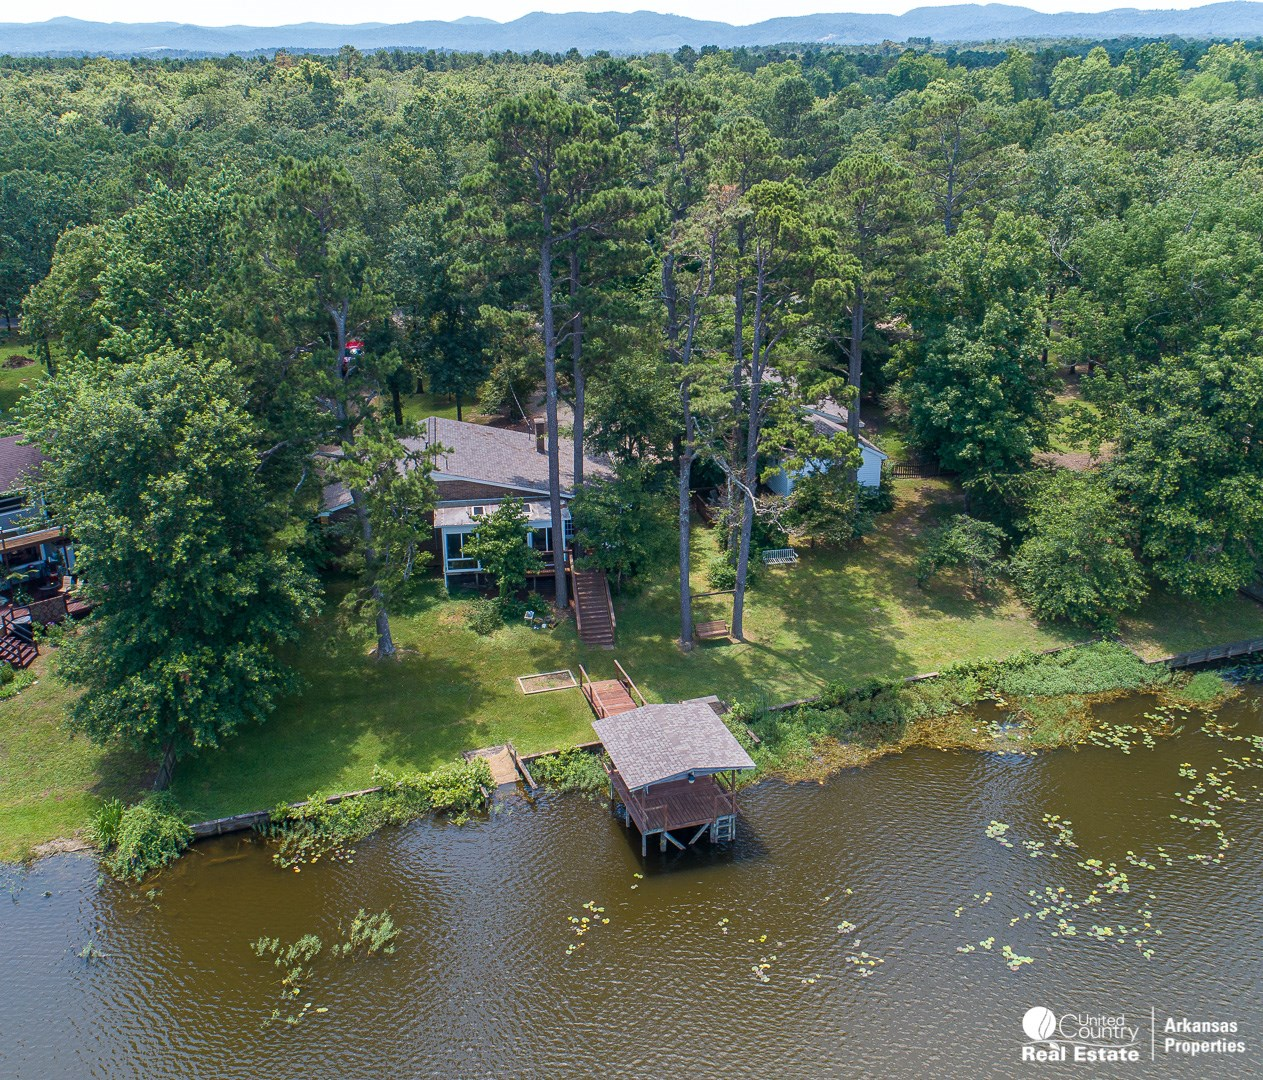 Lake Front Home for Sale in Arkansas